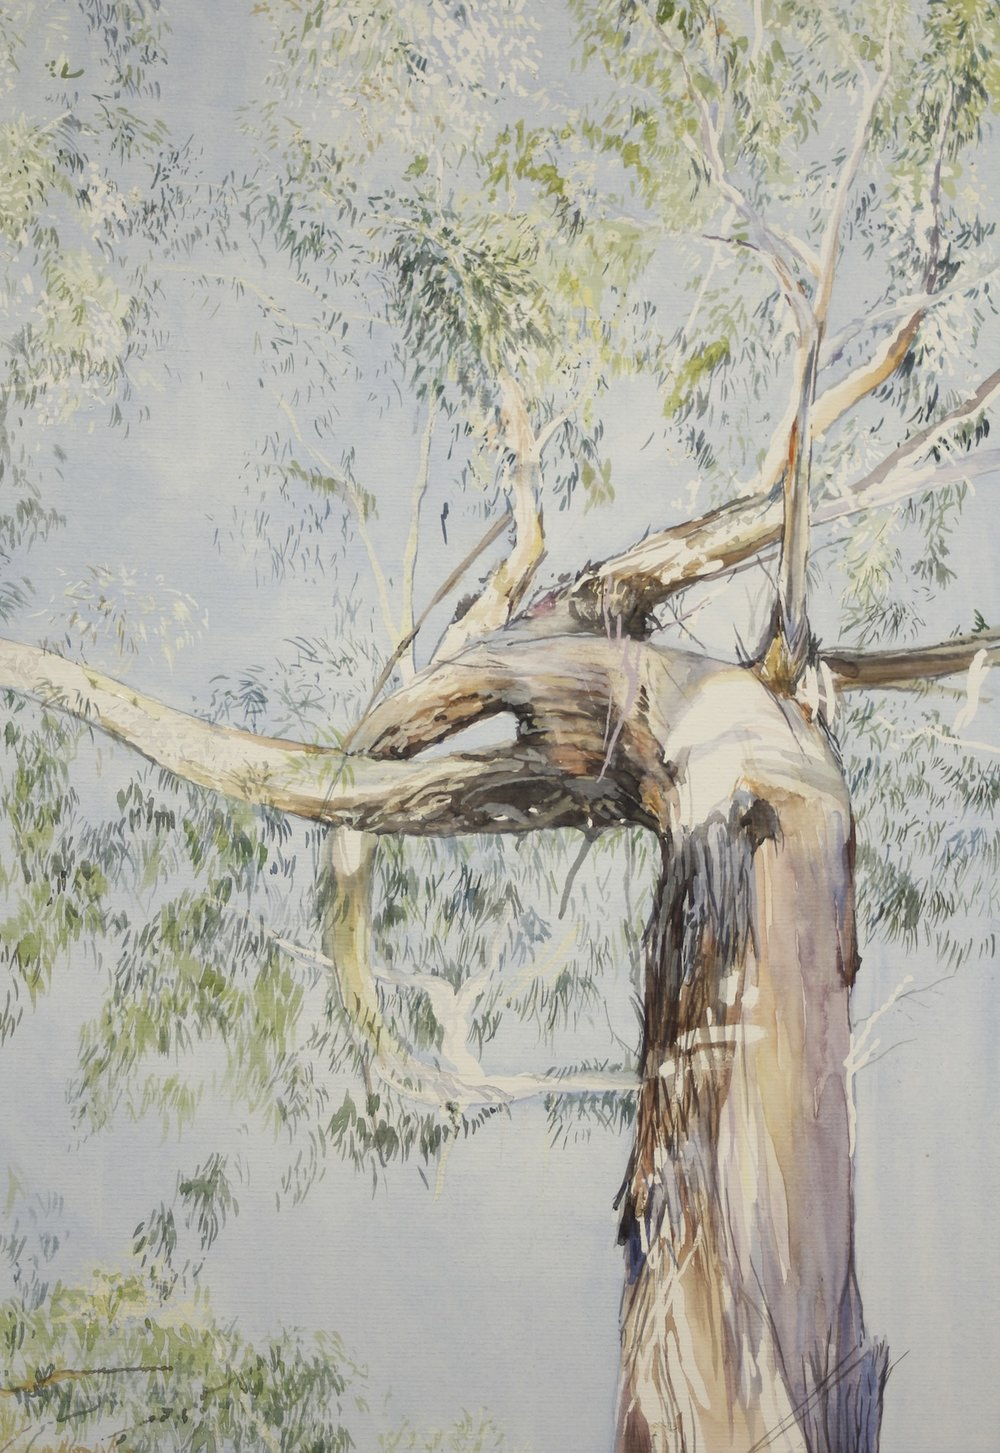 Eucalypt regrowth after fire